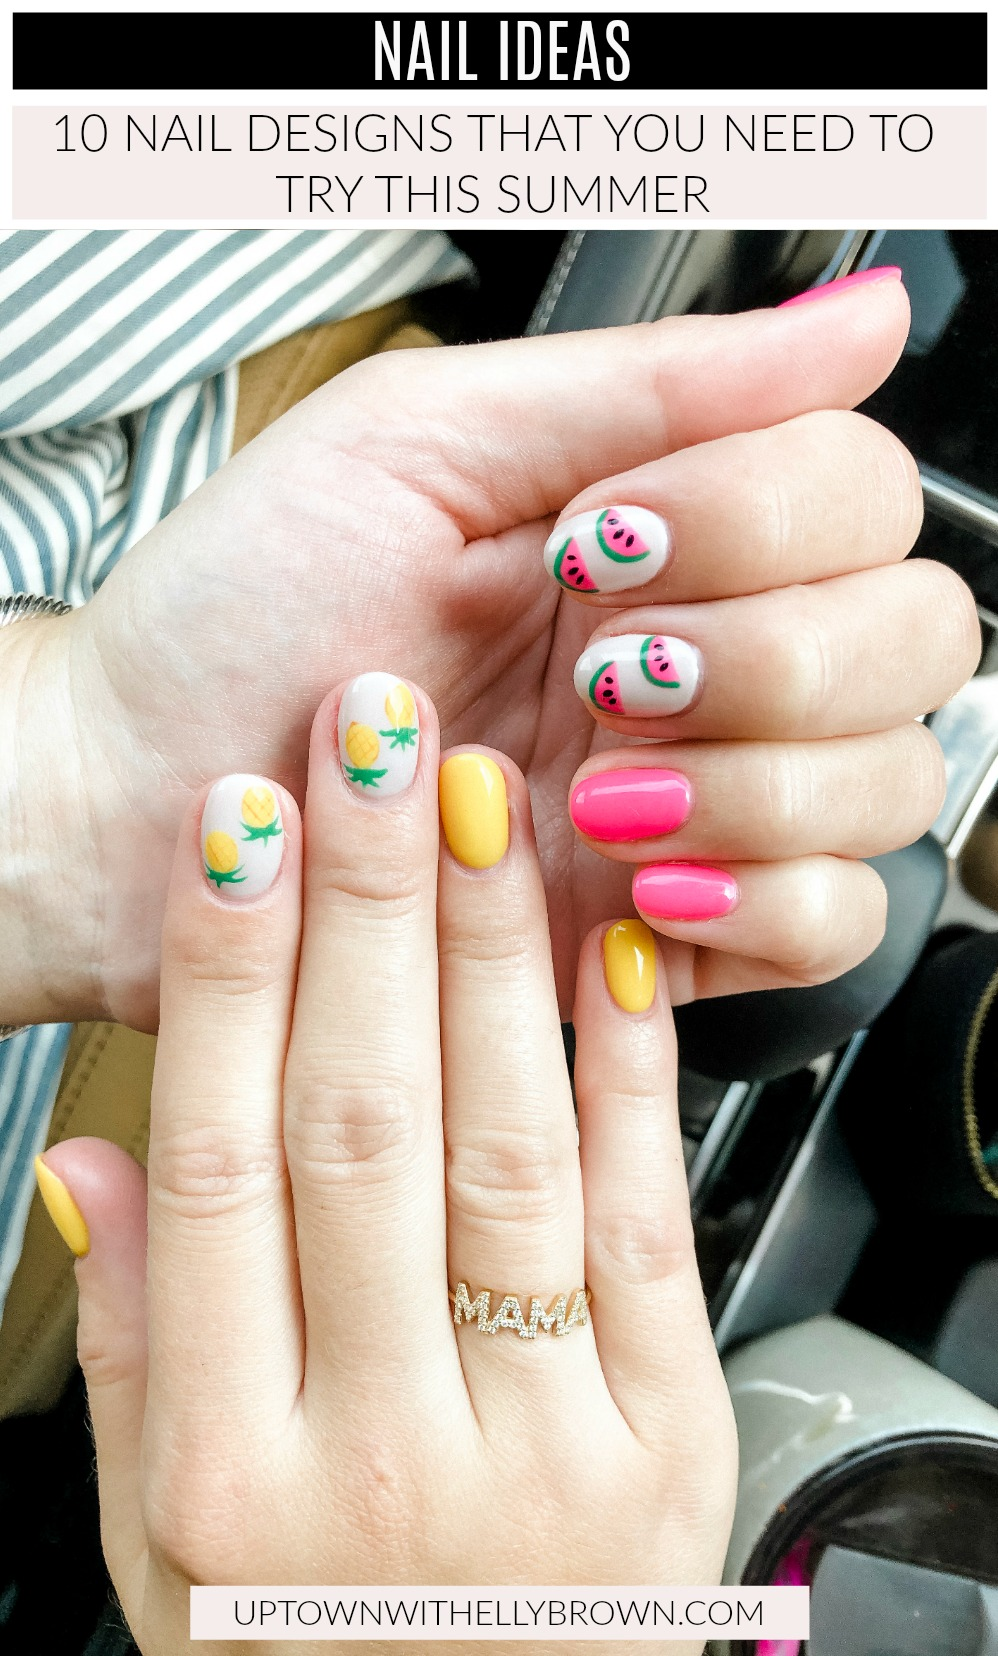 Looking for Nail Ideas? Houston Blogger Uptown with Elly Brown shares 10 of her favorite nail designs to get you ready for Summer!